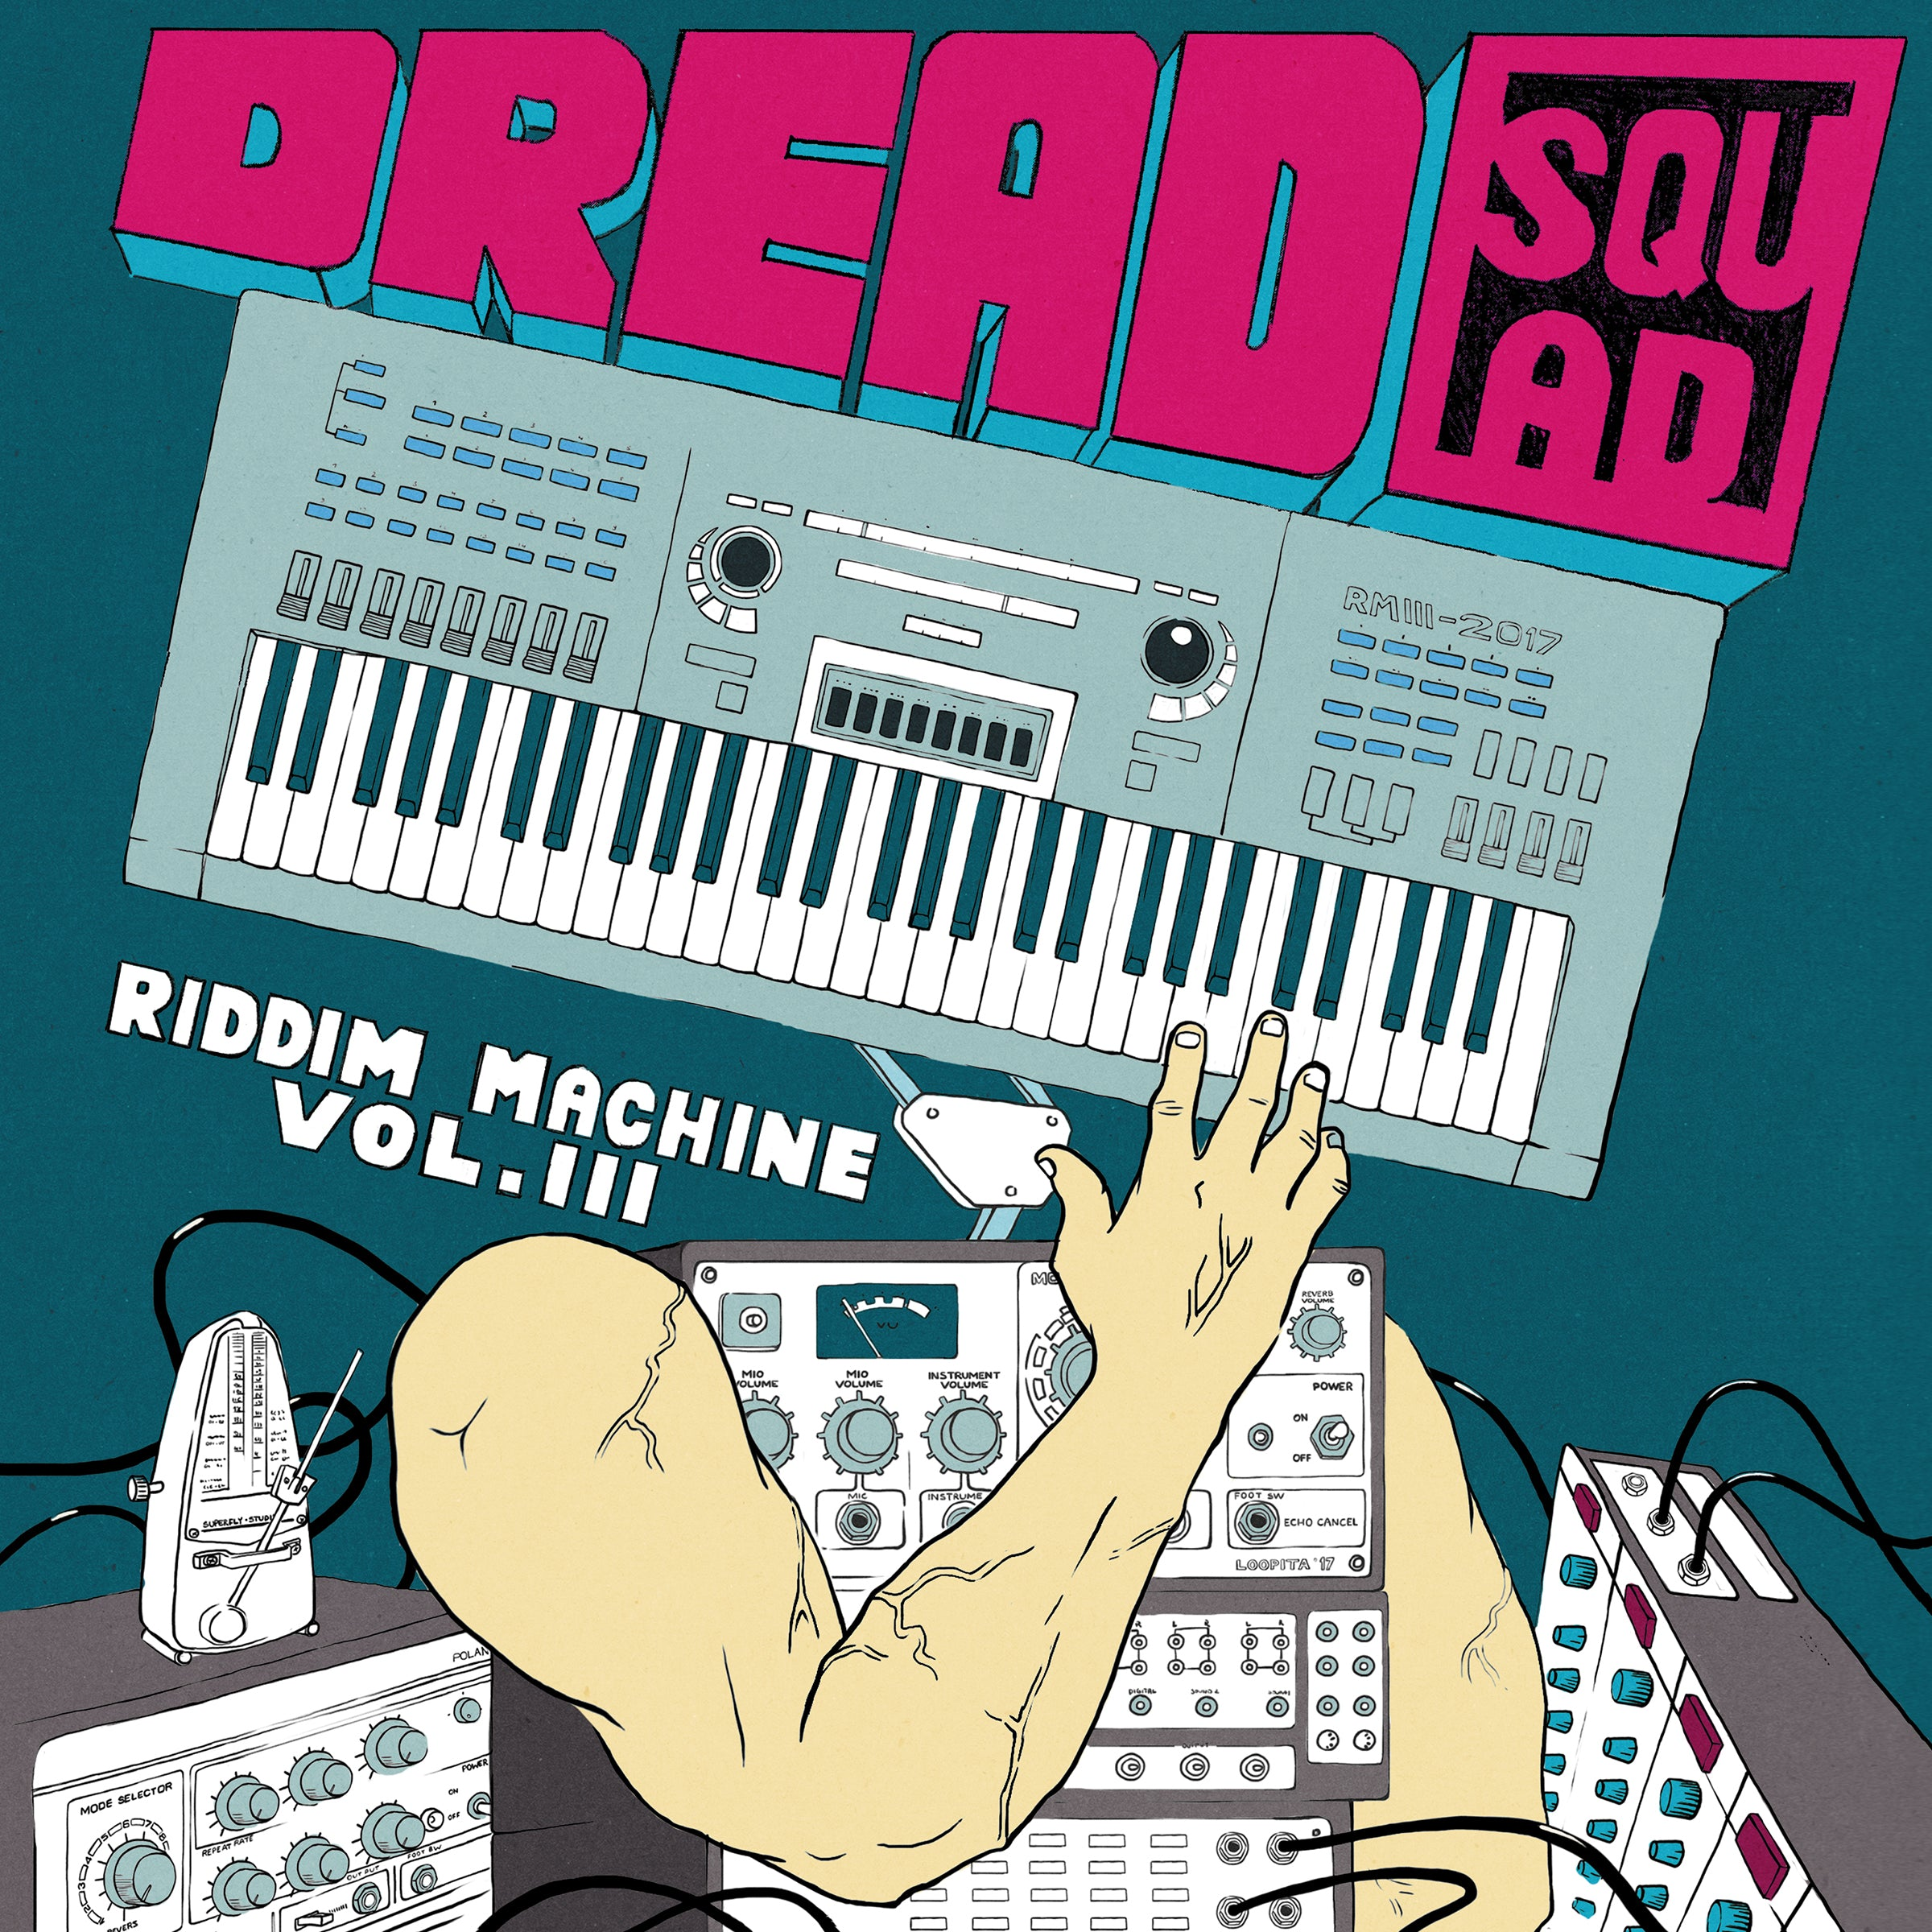 Dreadsquad - Riddim Machine, Vol. 3 (REPRESS)